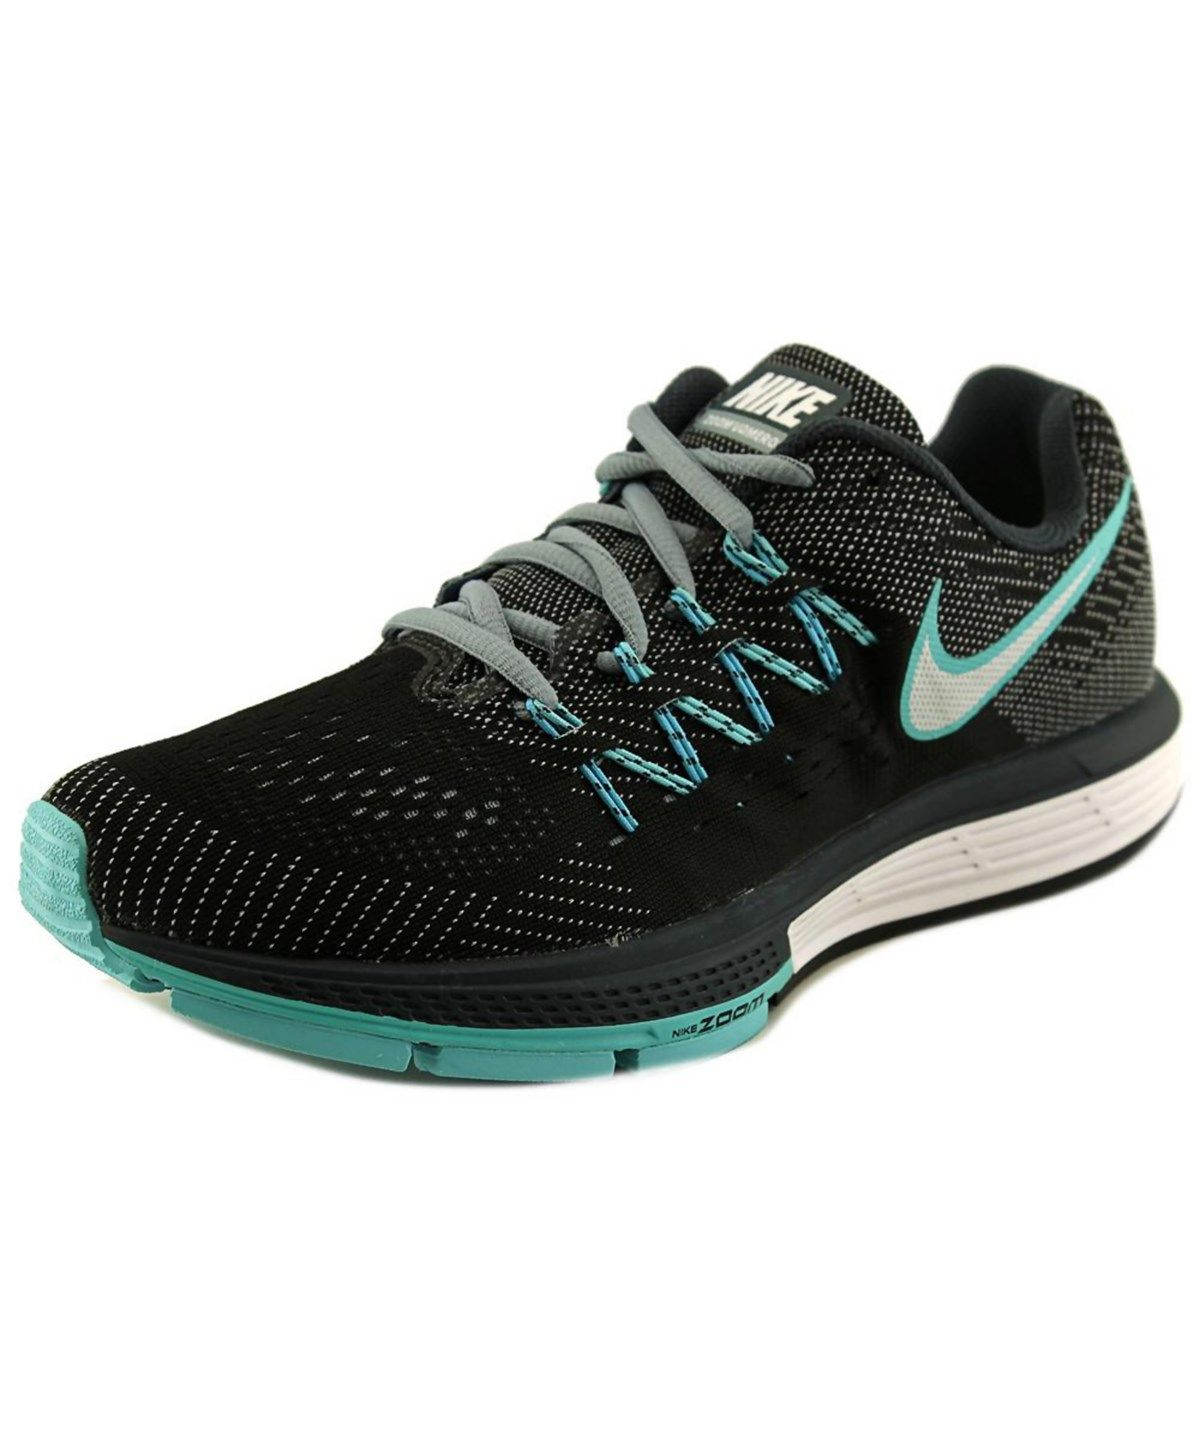 5995f4503eb NIKE Nike Air Zoom Vomero 10 Women Round Toe Synthetic Running Shoe .  nike   shoes  sneakers